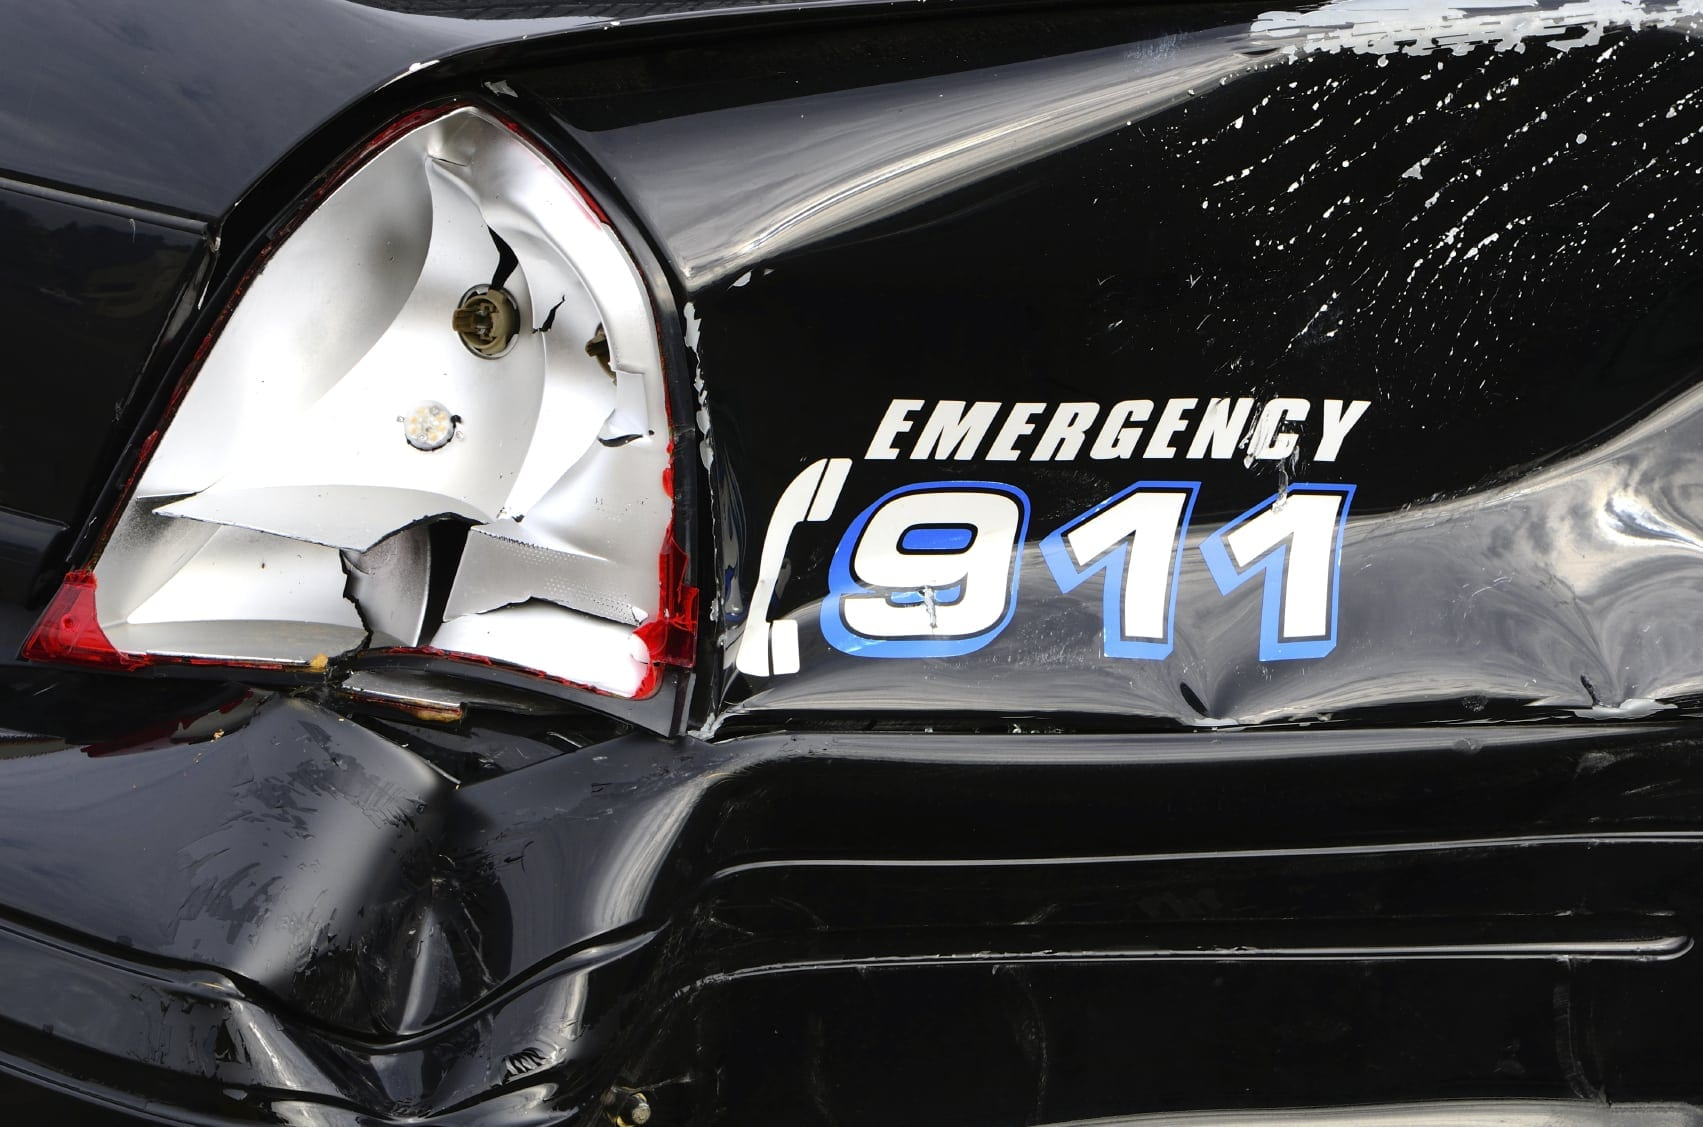 Colorado Springs Car Accident Lawyers Discuss Multi-vehicle Accident Involving Squad Car